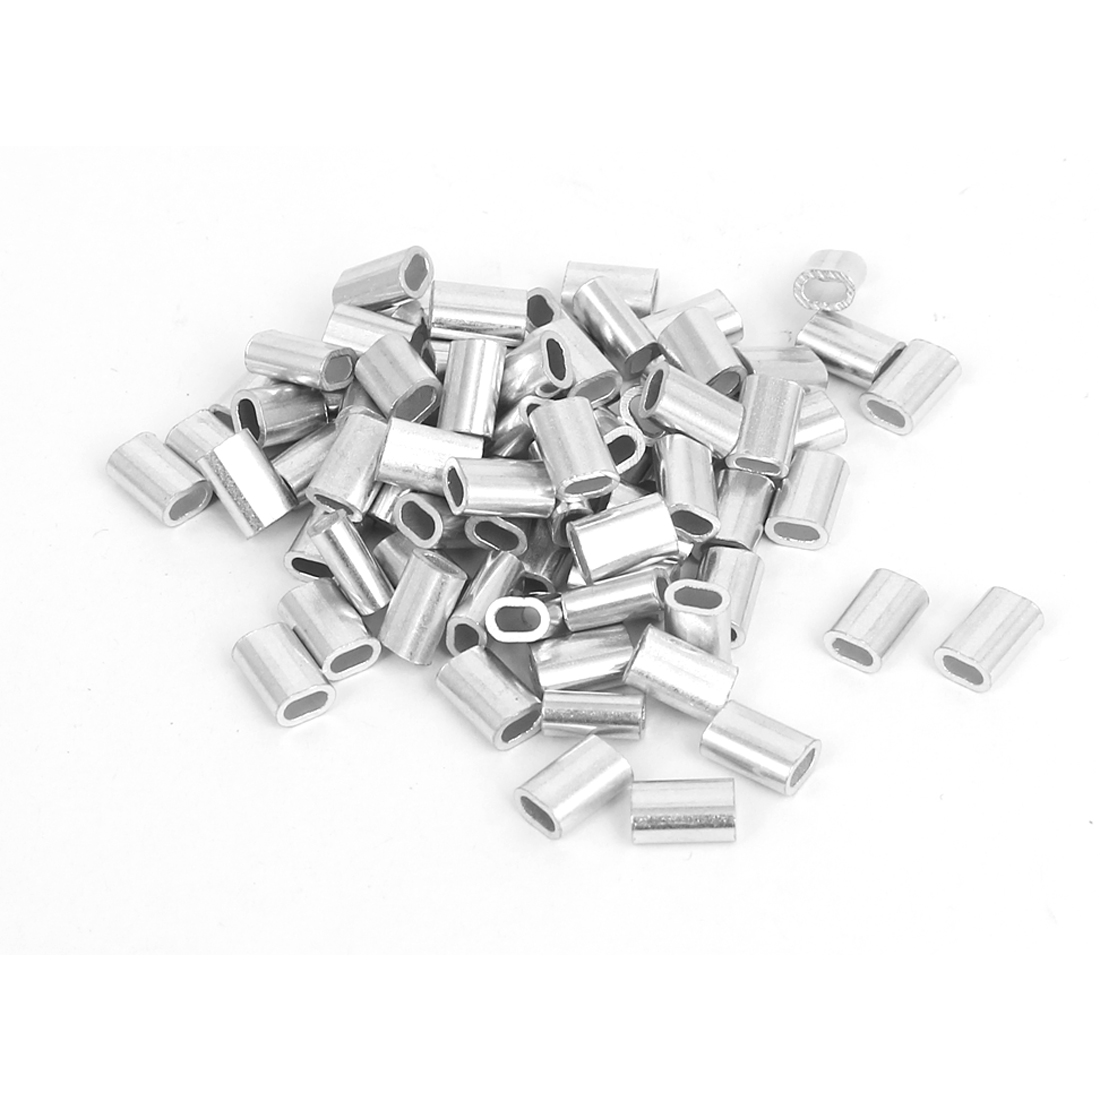 80pcs M1.5 Oval Aluminum Clip Ferrule Sleeves for 1.5mm Wire Rope